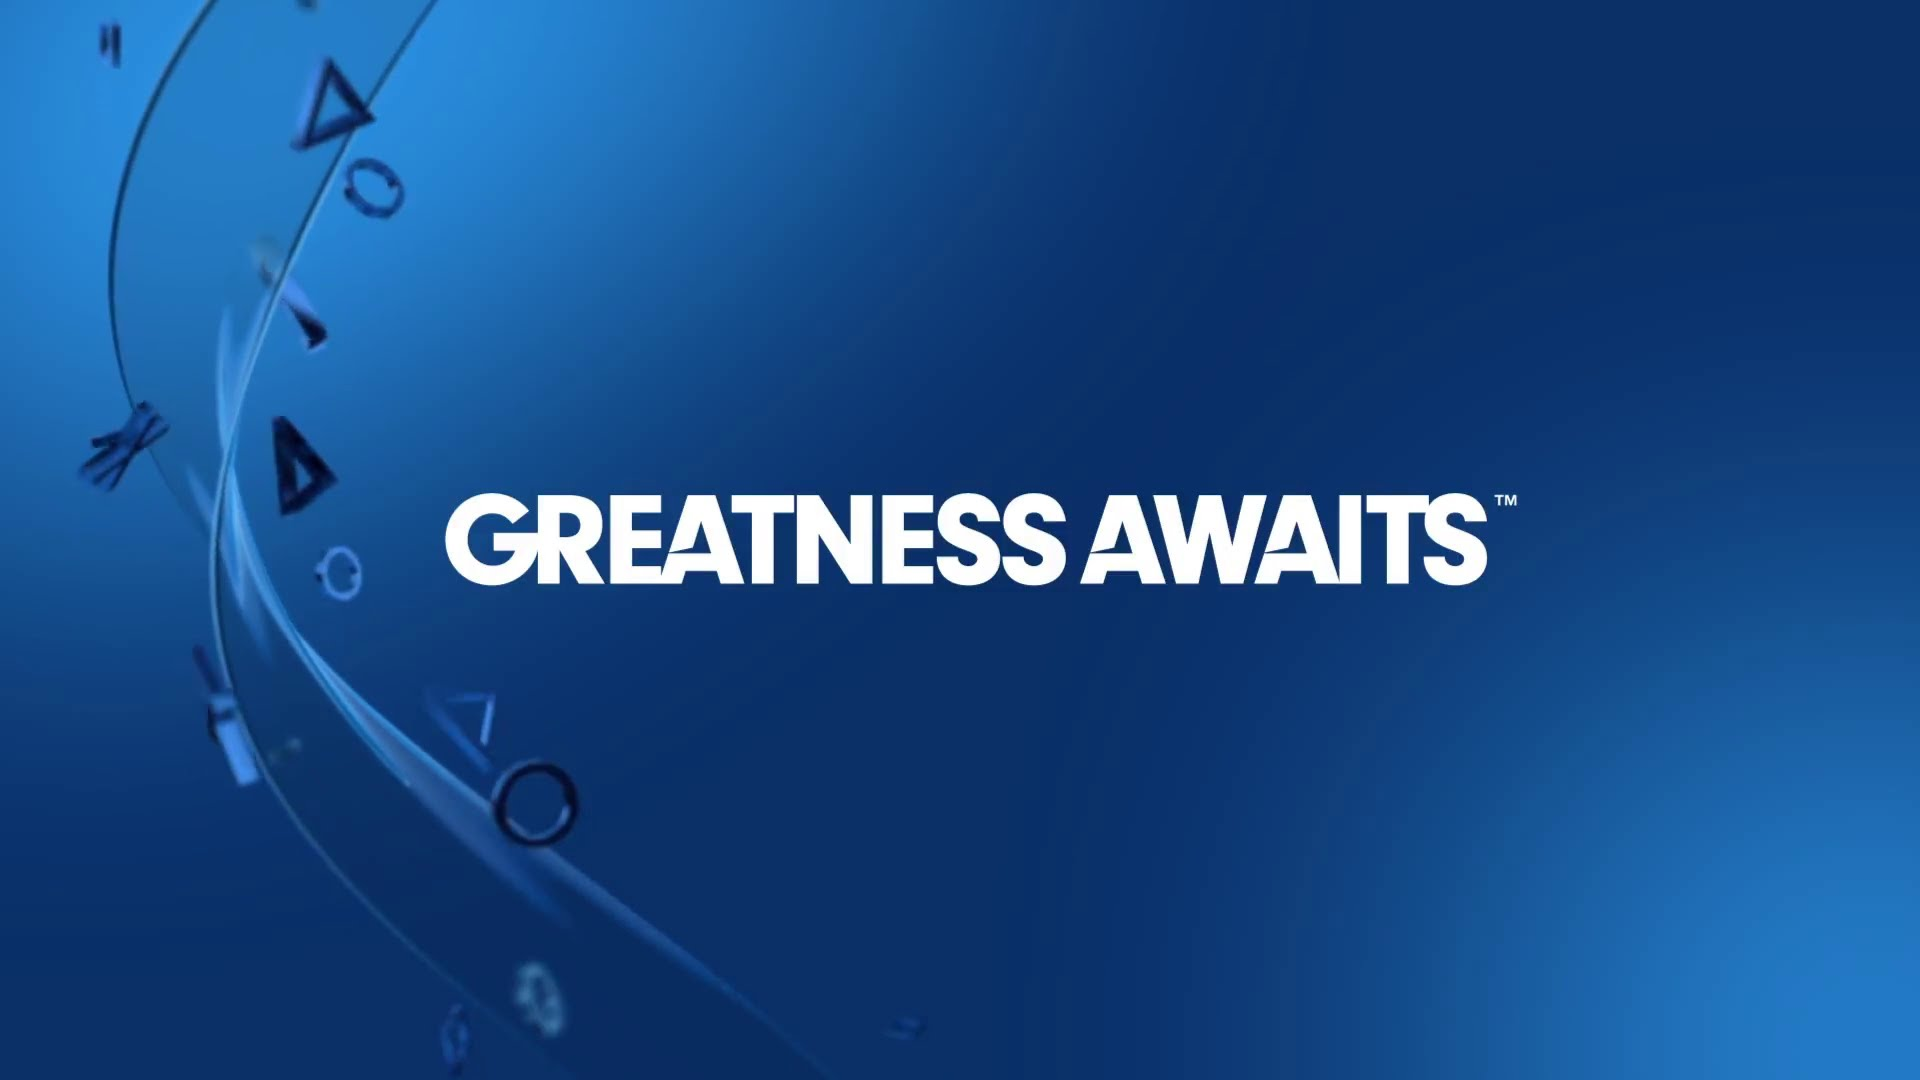 greatness awaits wallpaper 41952